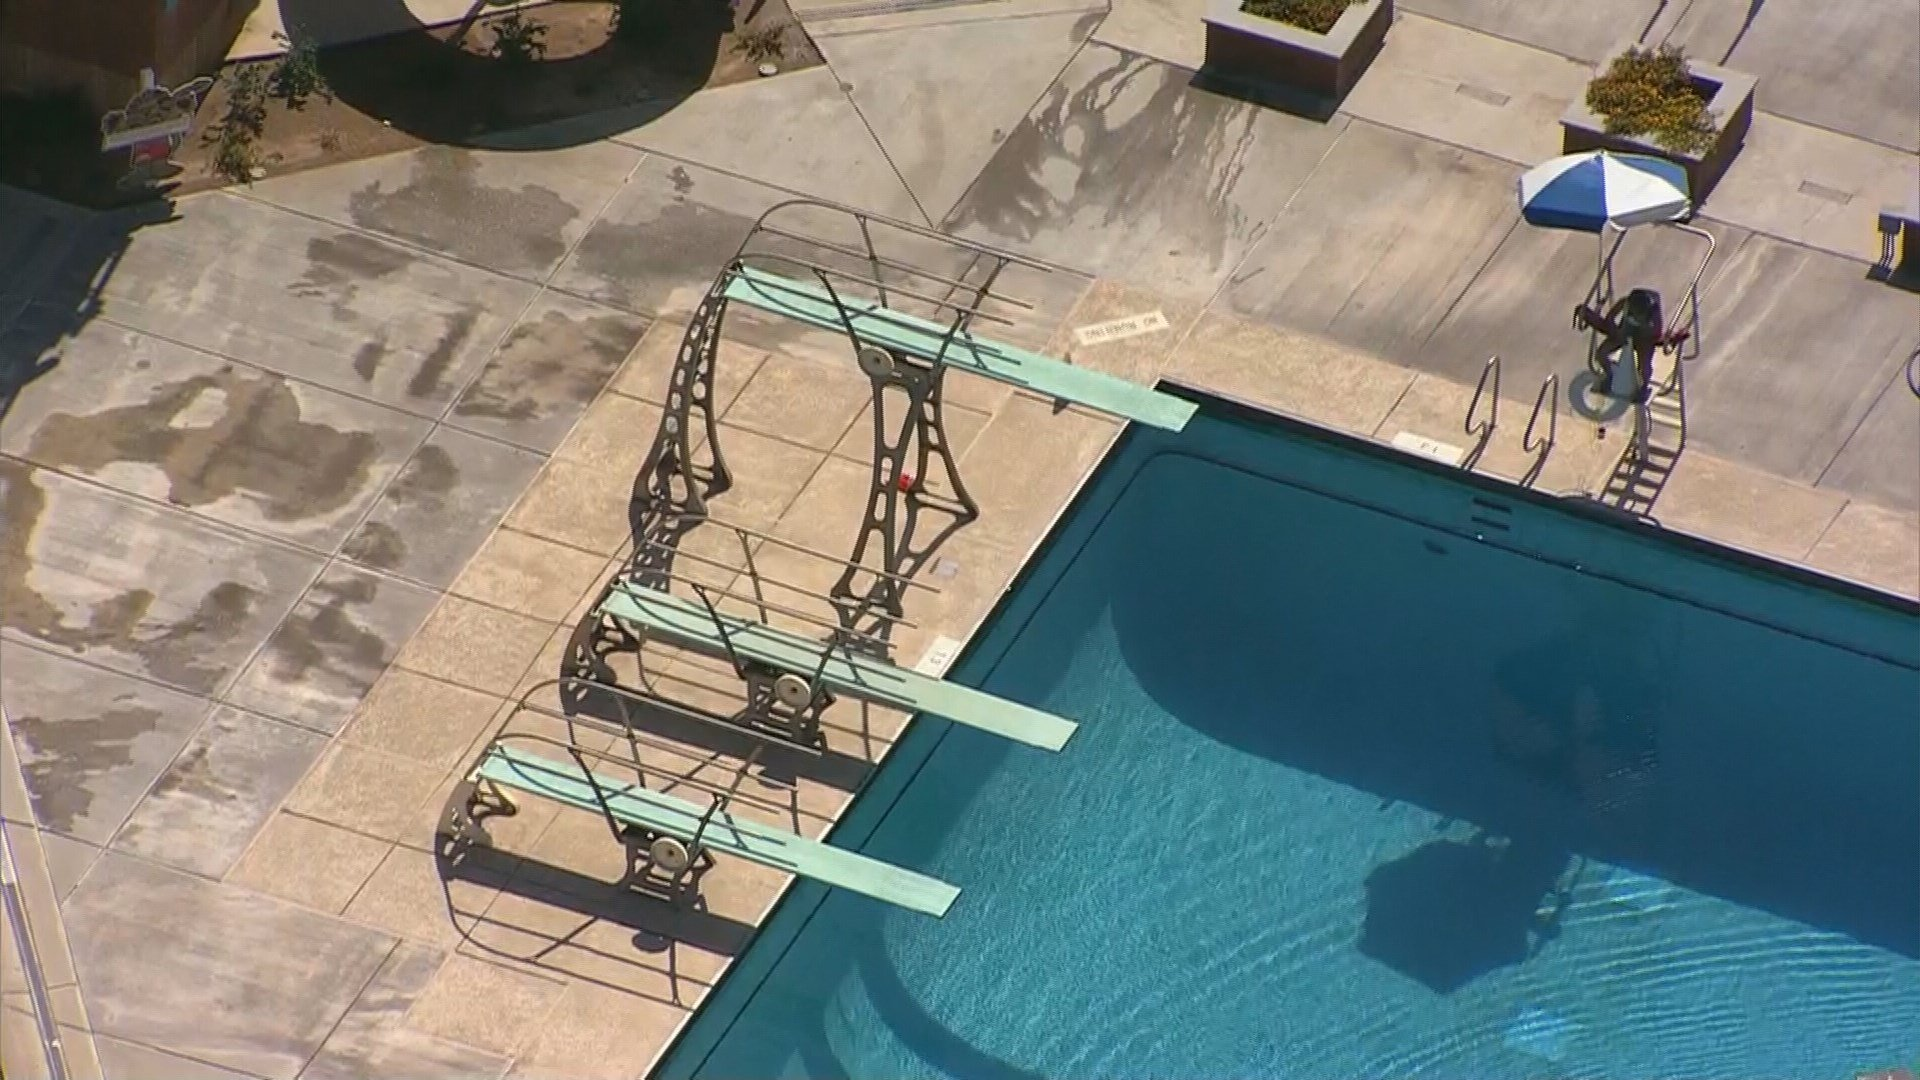 Fd boy 9 falls from high dive onto concrete at pool in for Pool fill in mesa az